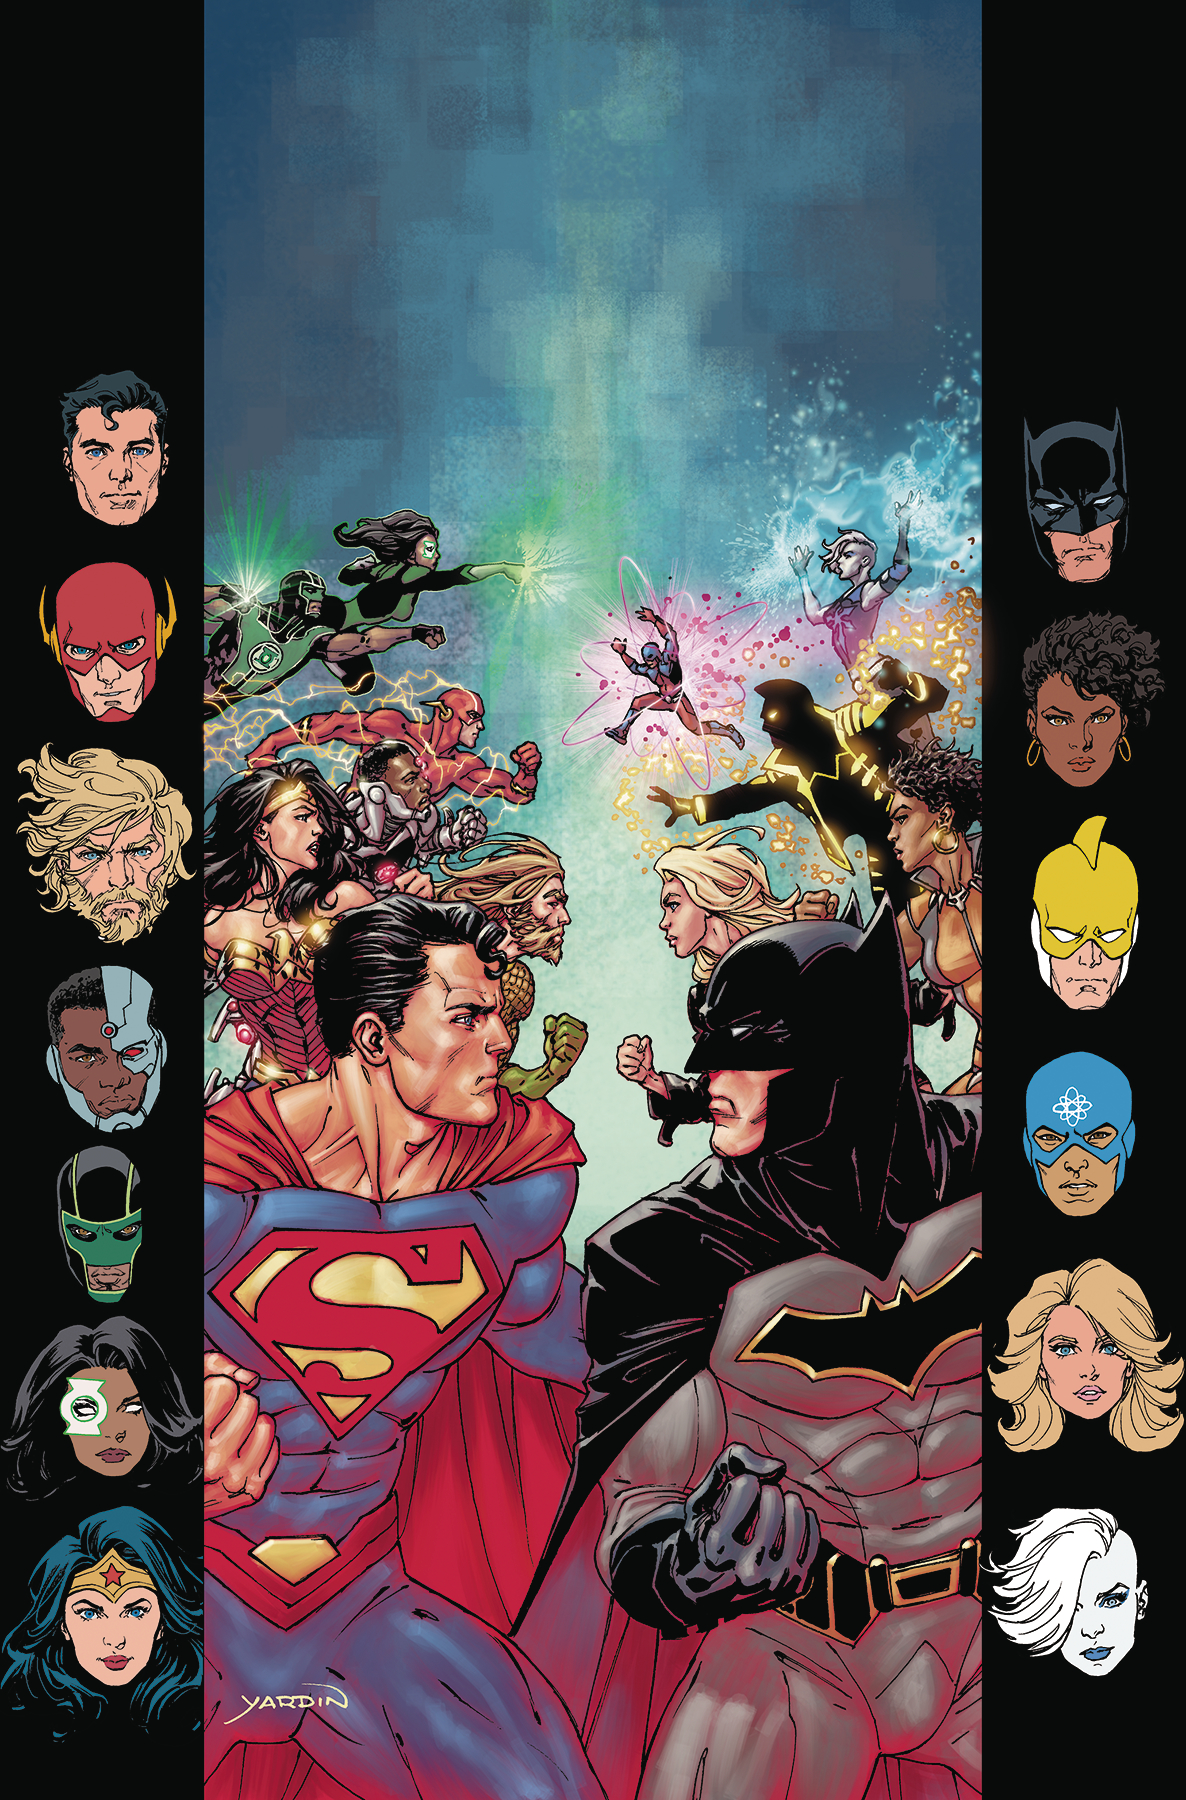 Justice League Tp Vol 07 Justice Lost (JUN180582)